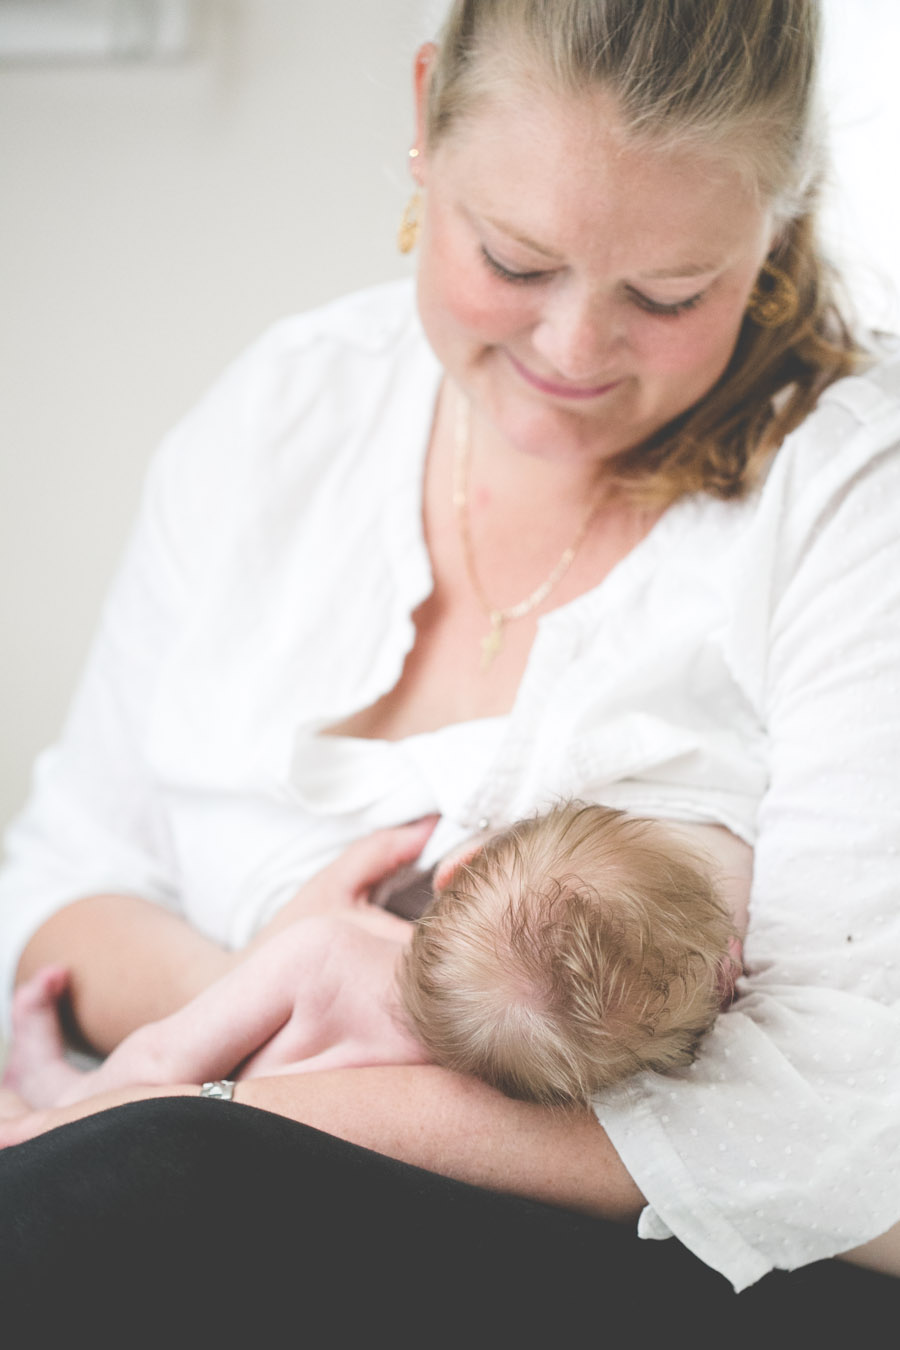 Heirloom Photo Company | Newborn Photography | Baby James 07